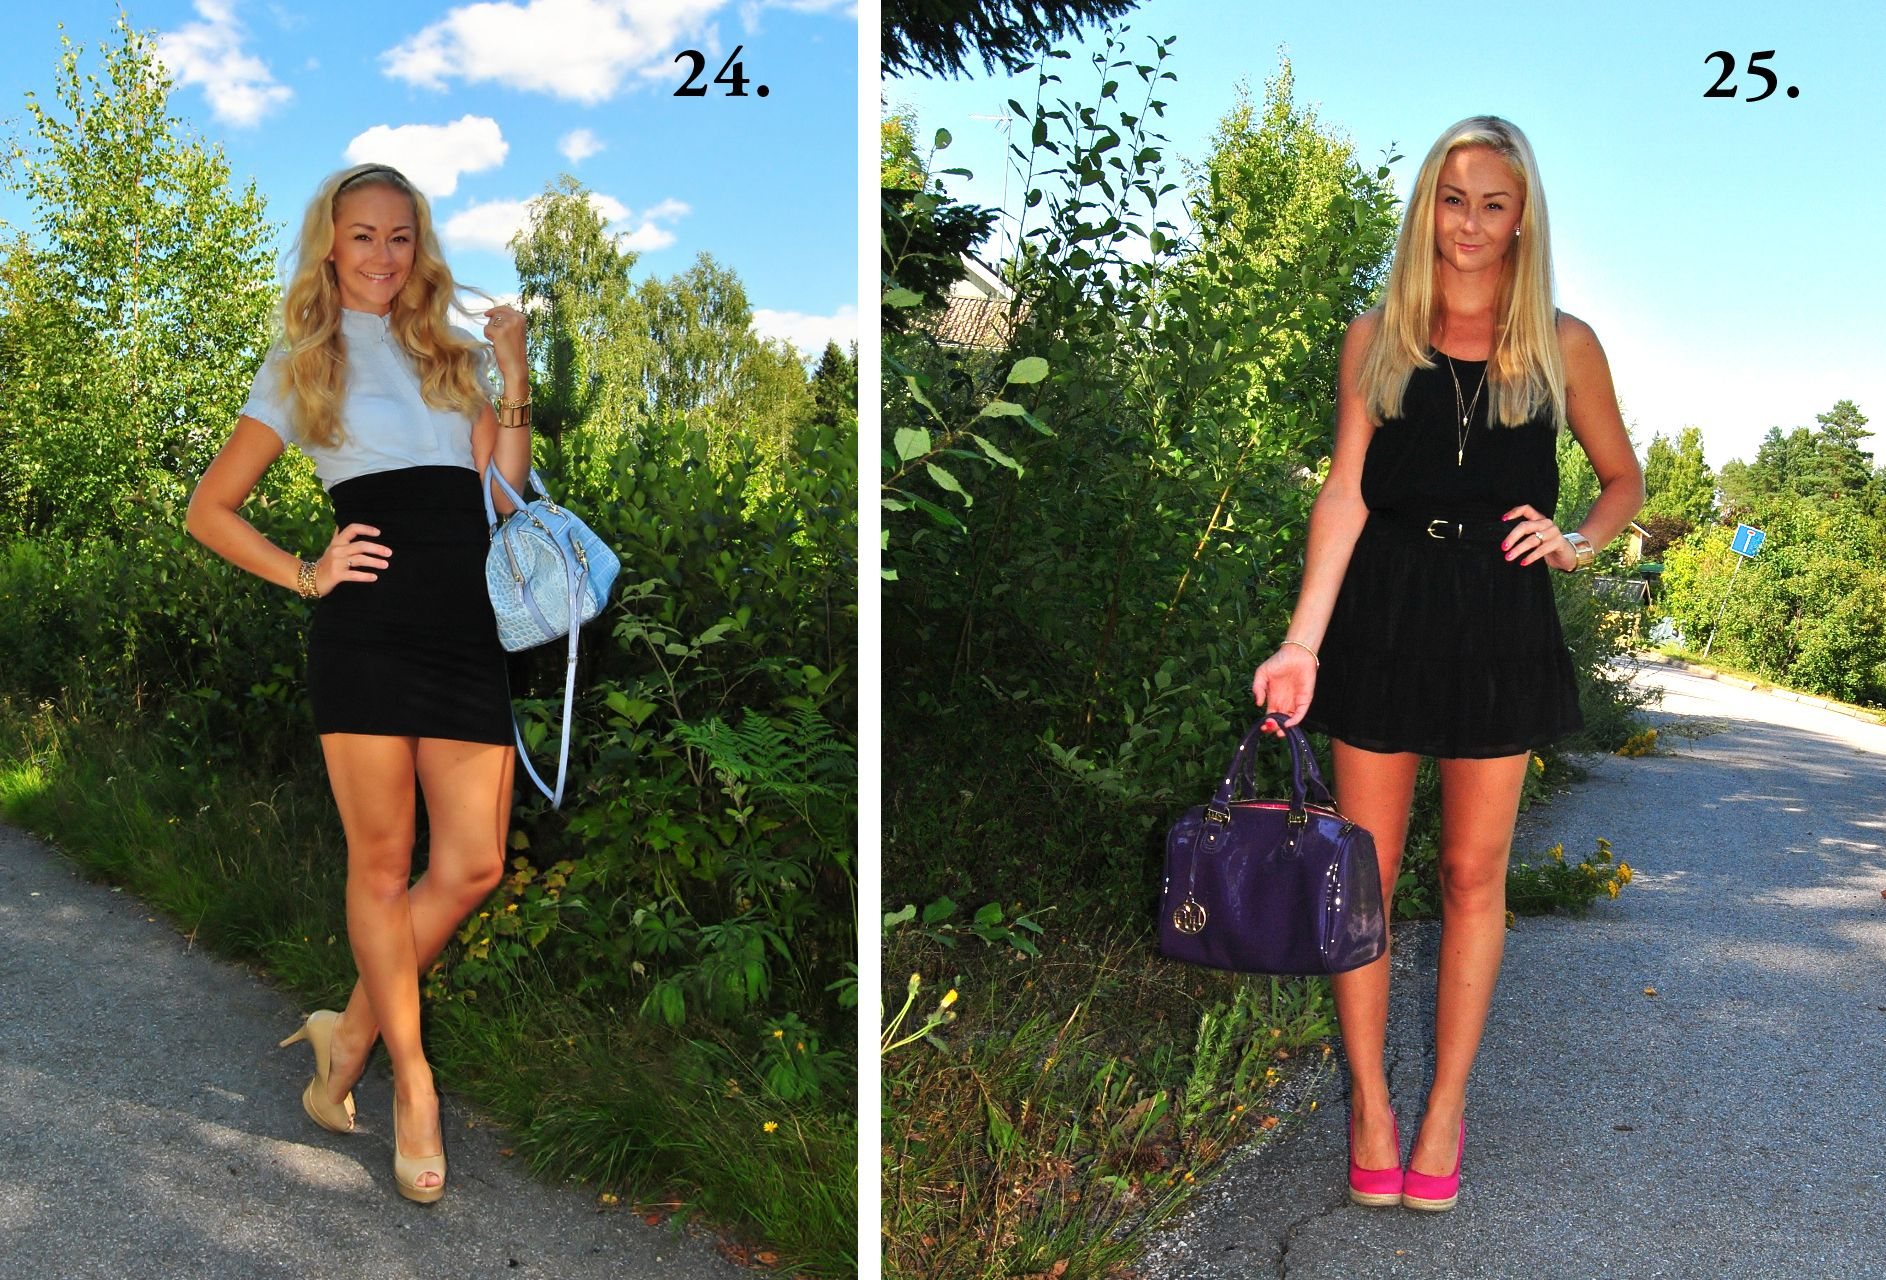 todays outfit, outfit, todays, lookbook, look, fashion, streetfashion  http://miauslife.com/wp-content/uploads/2013/08/24ja25.jpg